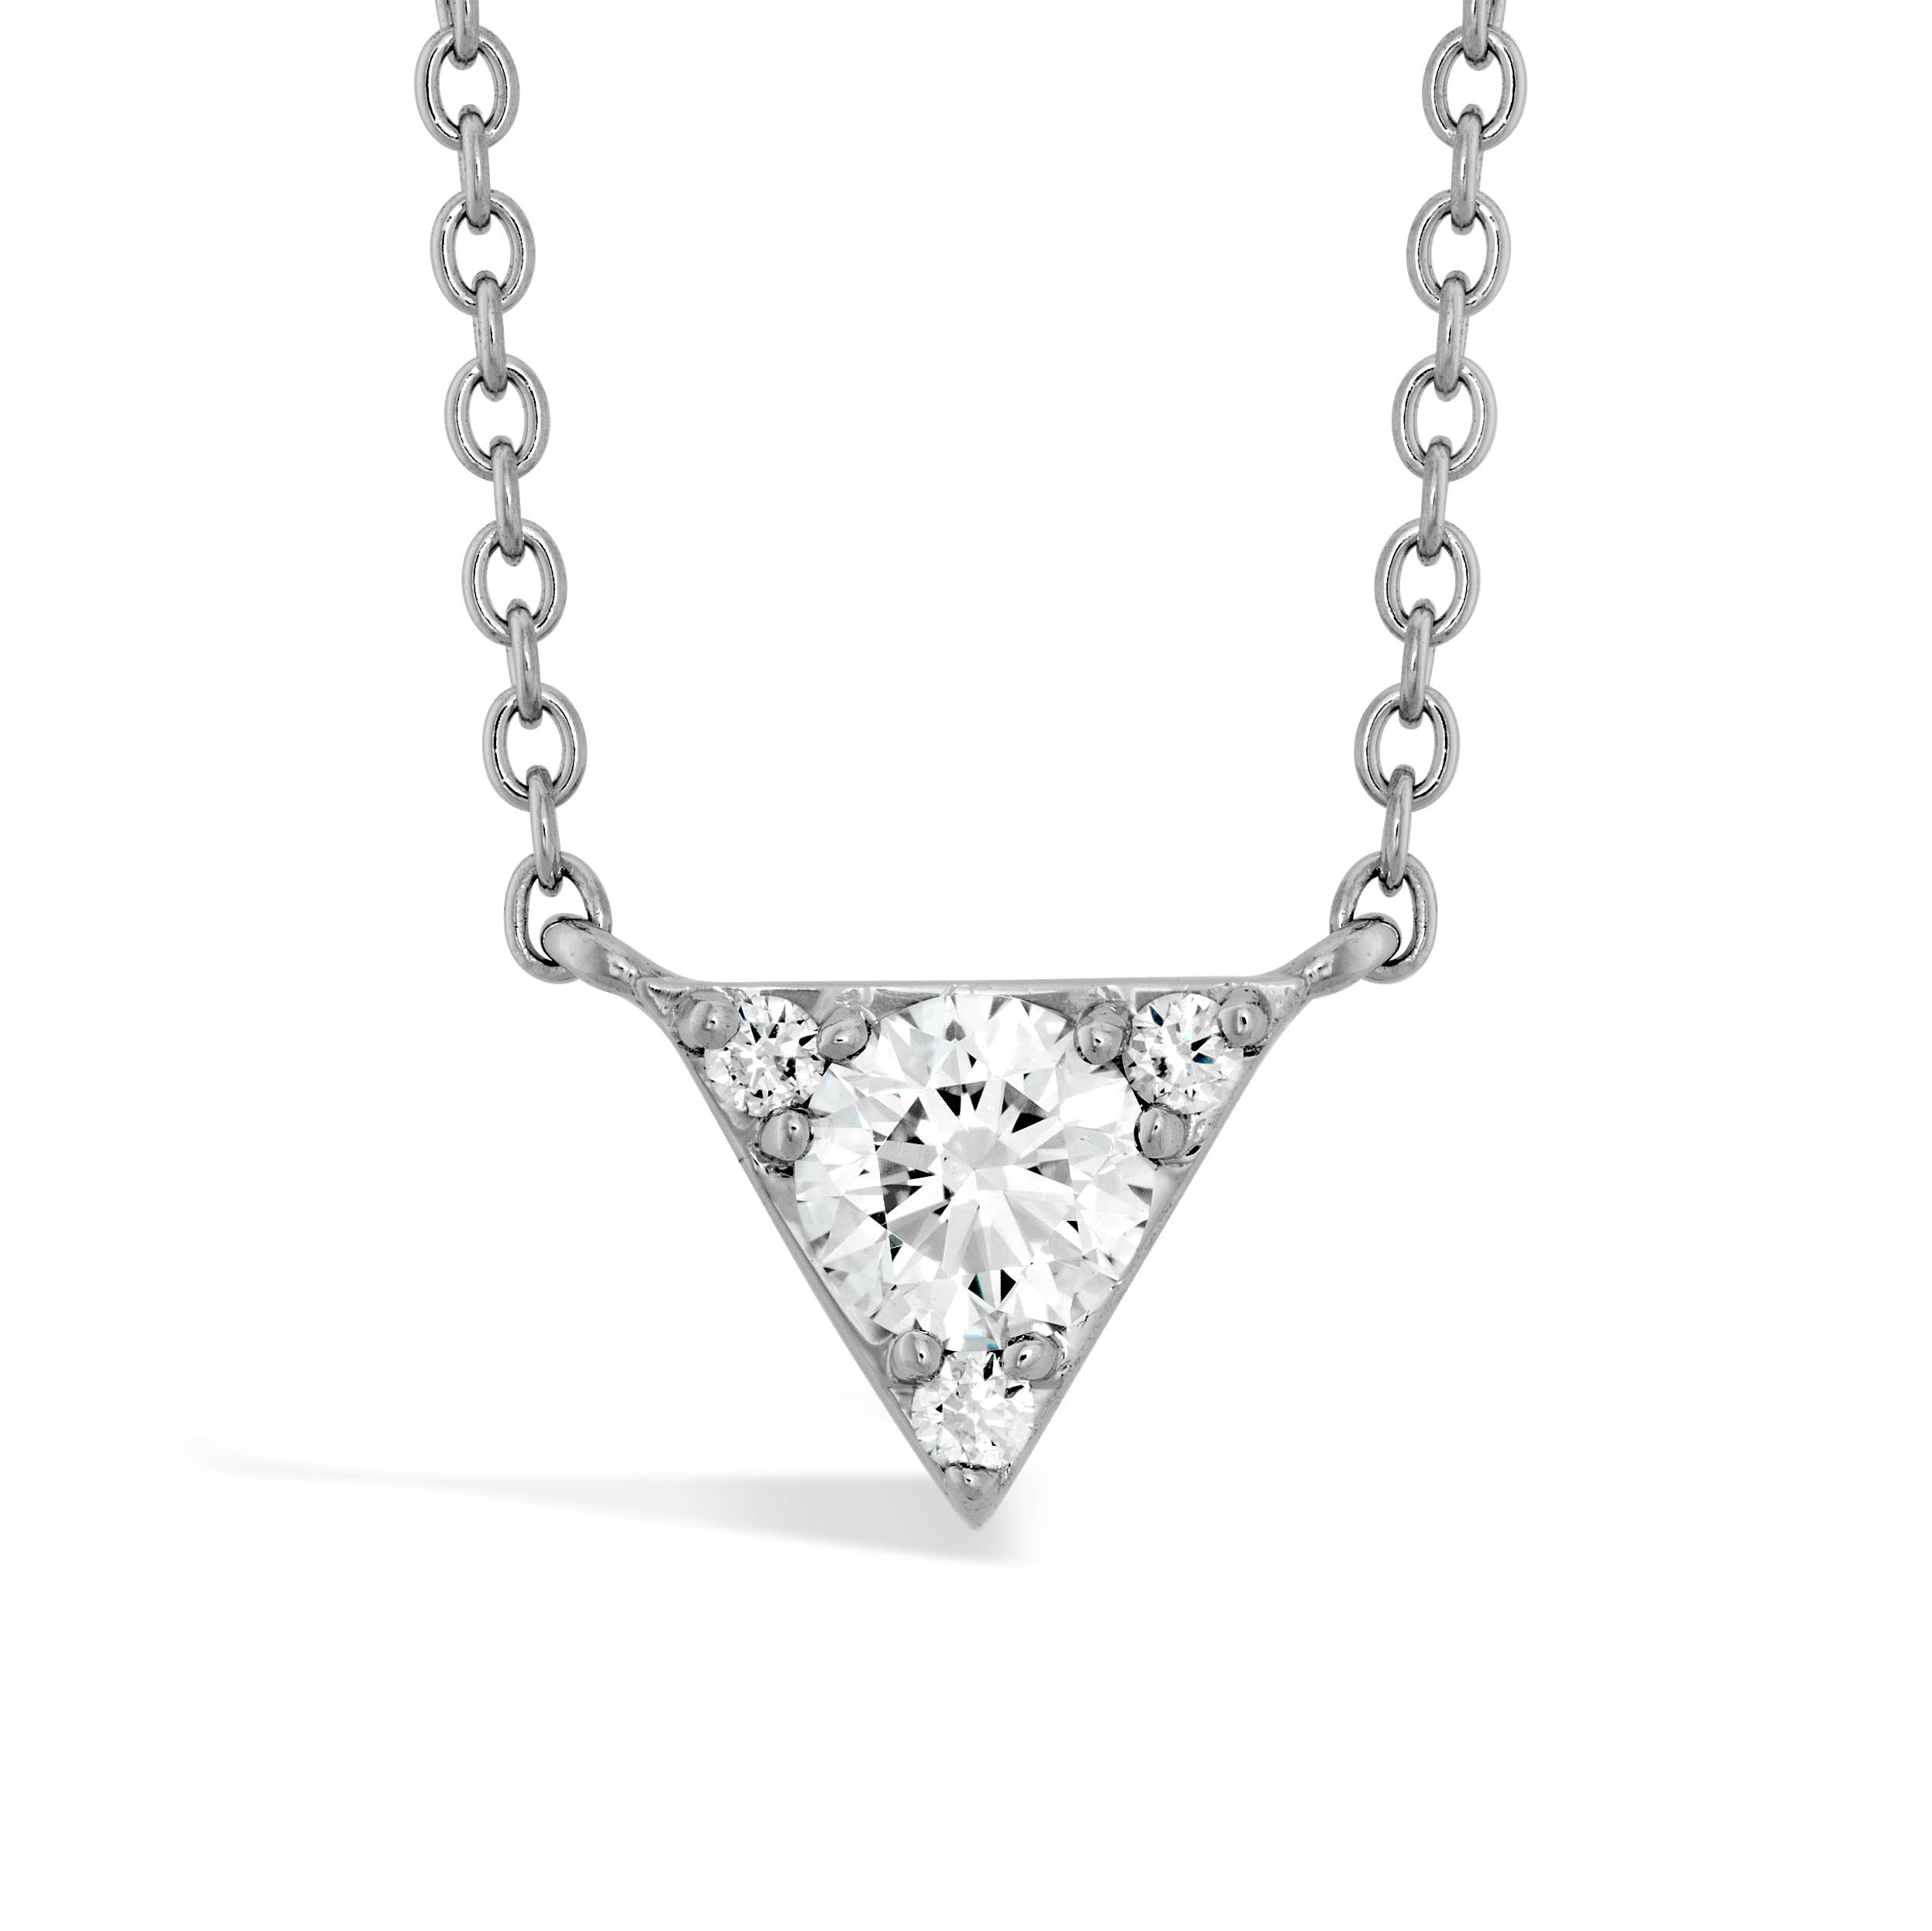 hearts heart c surrender solitaire dealer page designers fire dream category diamond on authorized product jewelry